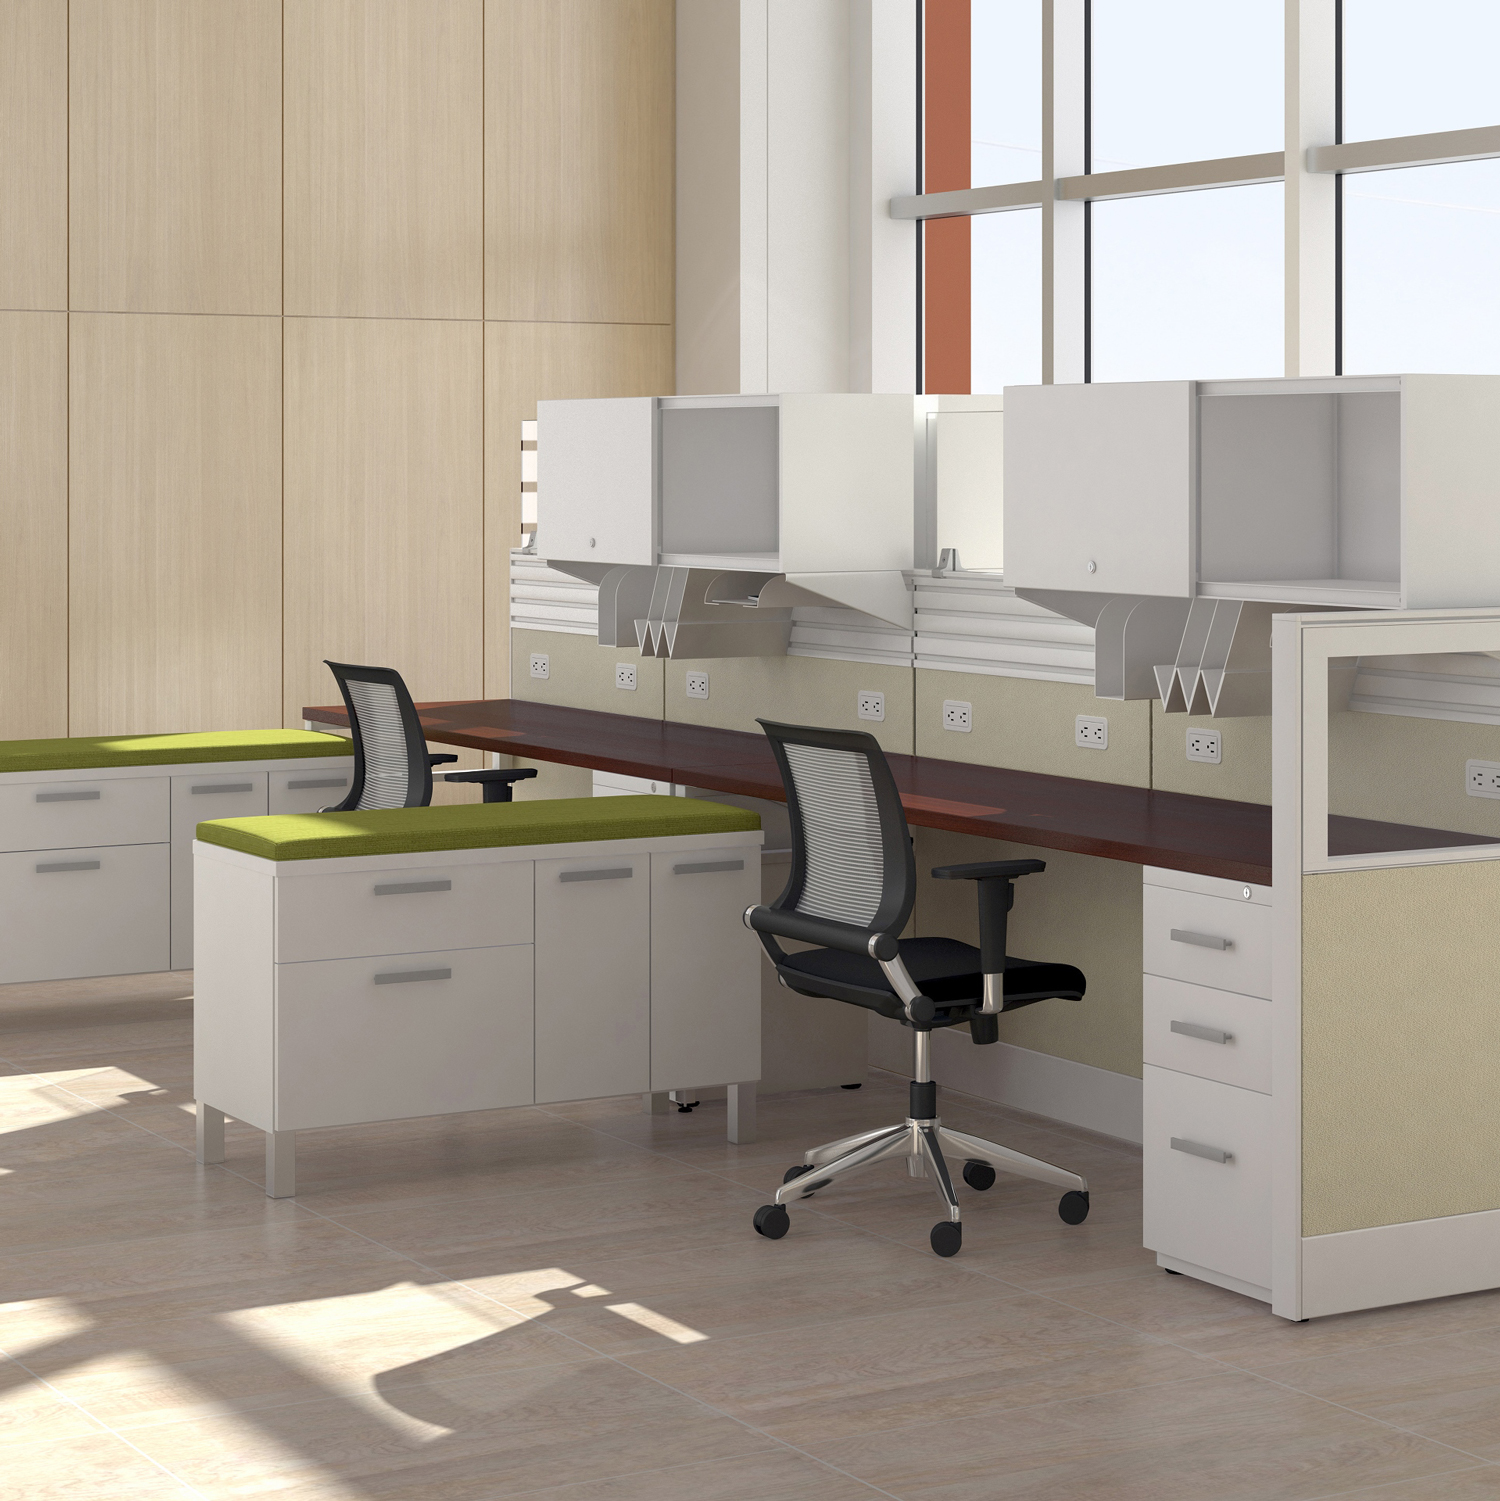 interra by friant vision office interiors rh visionofficeinteriors com friant novo office furniture friant novo office furniture